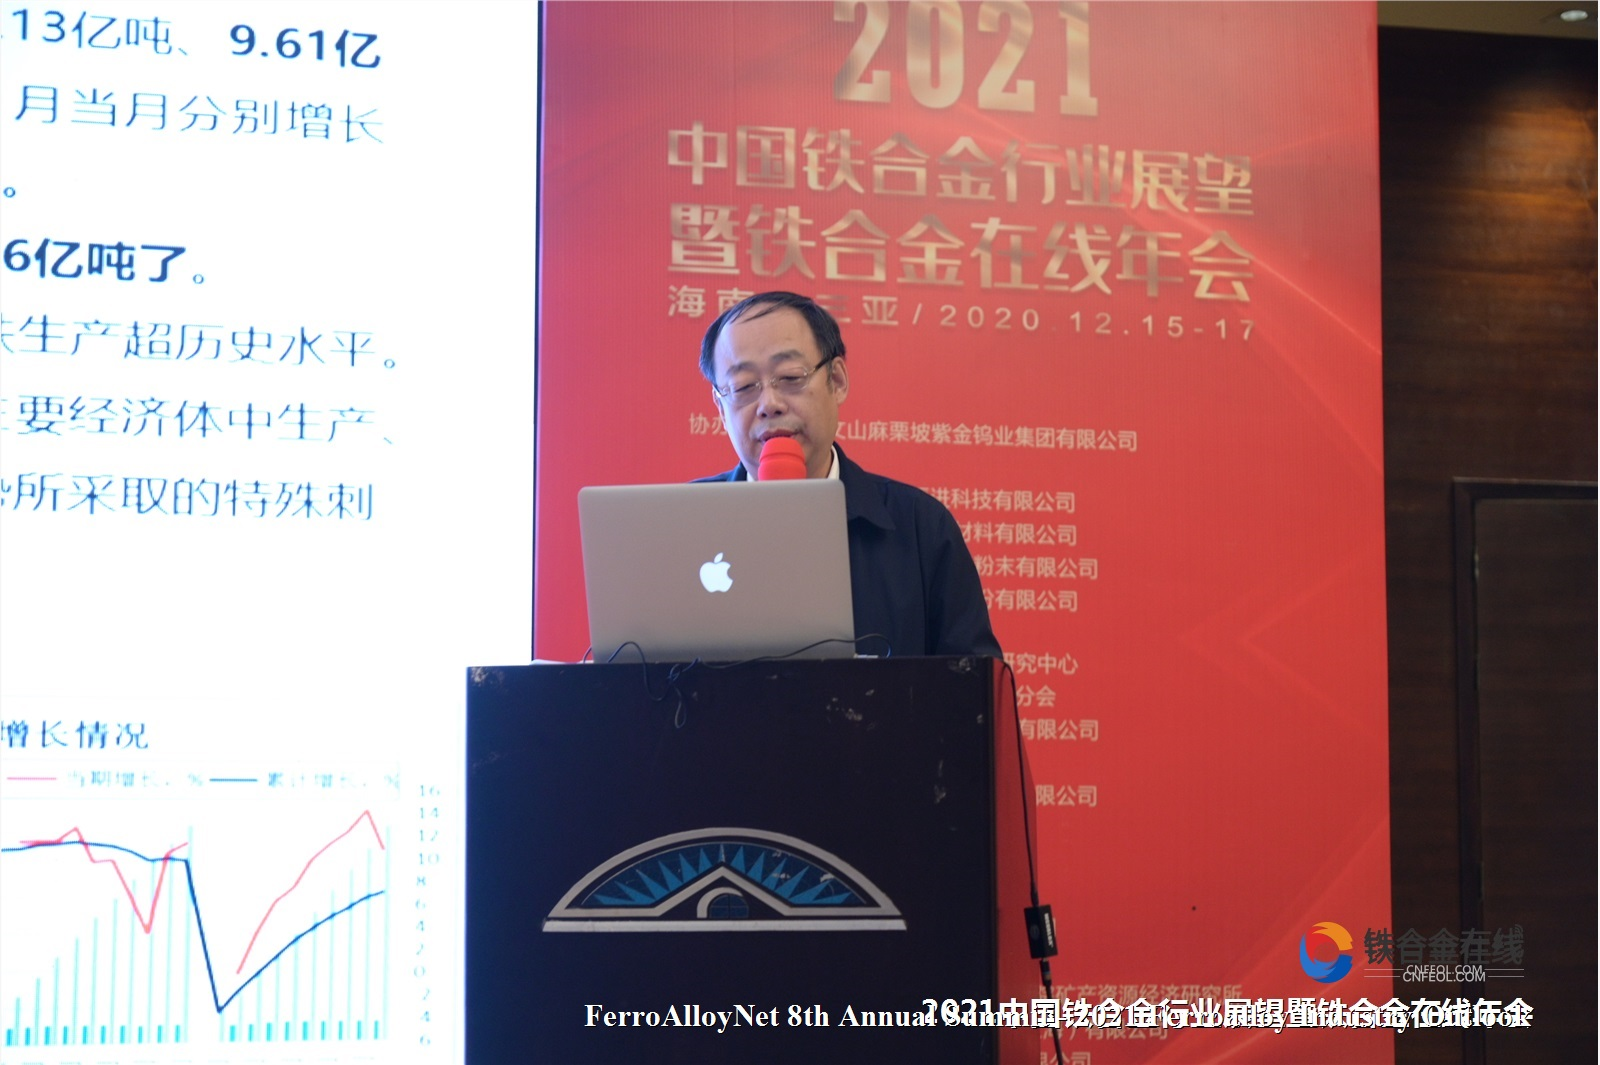 Zheng Yuchun--Analysis on the Status of China's Steel Industry in 2020 and Outlook for Future Trends